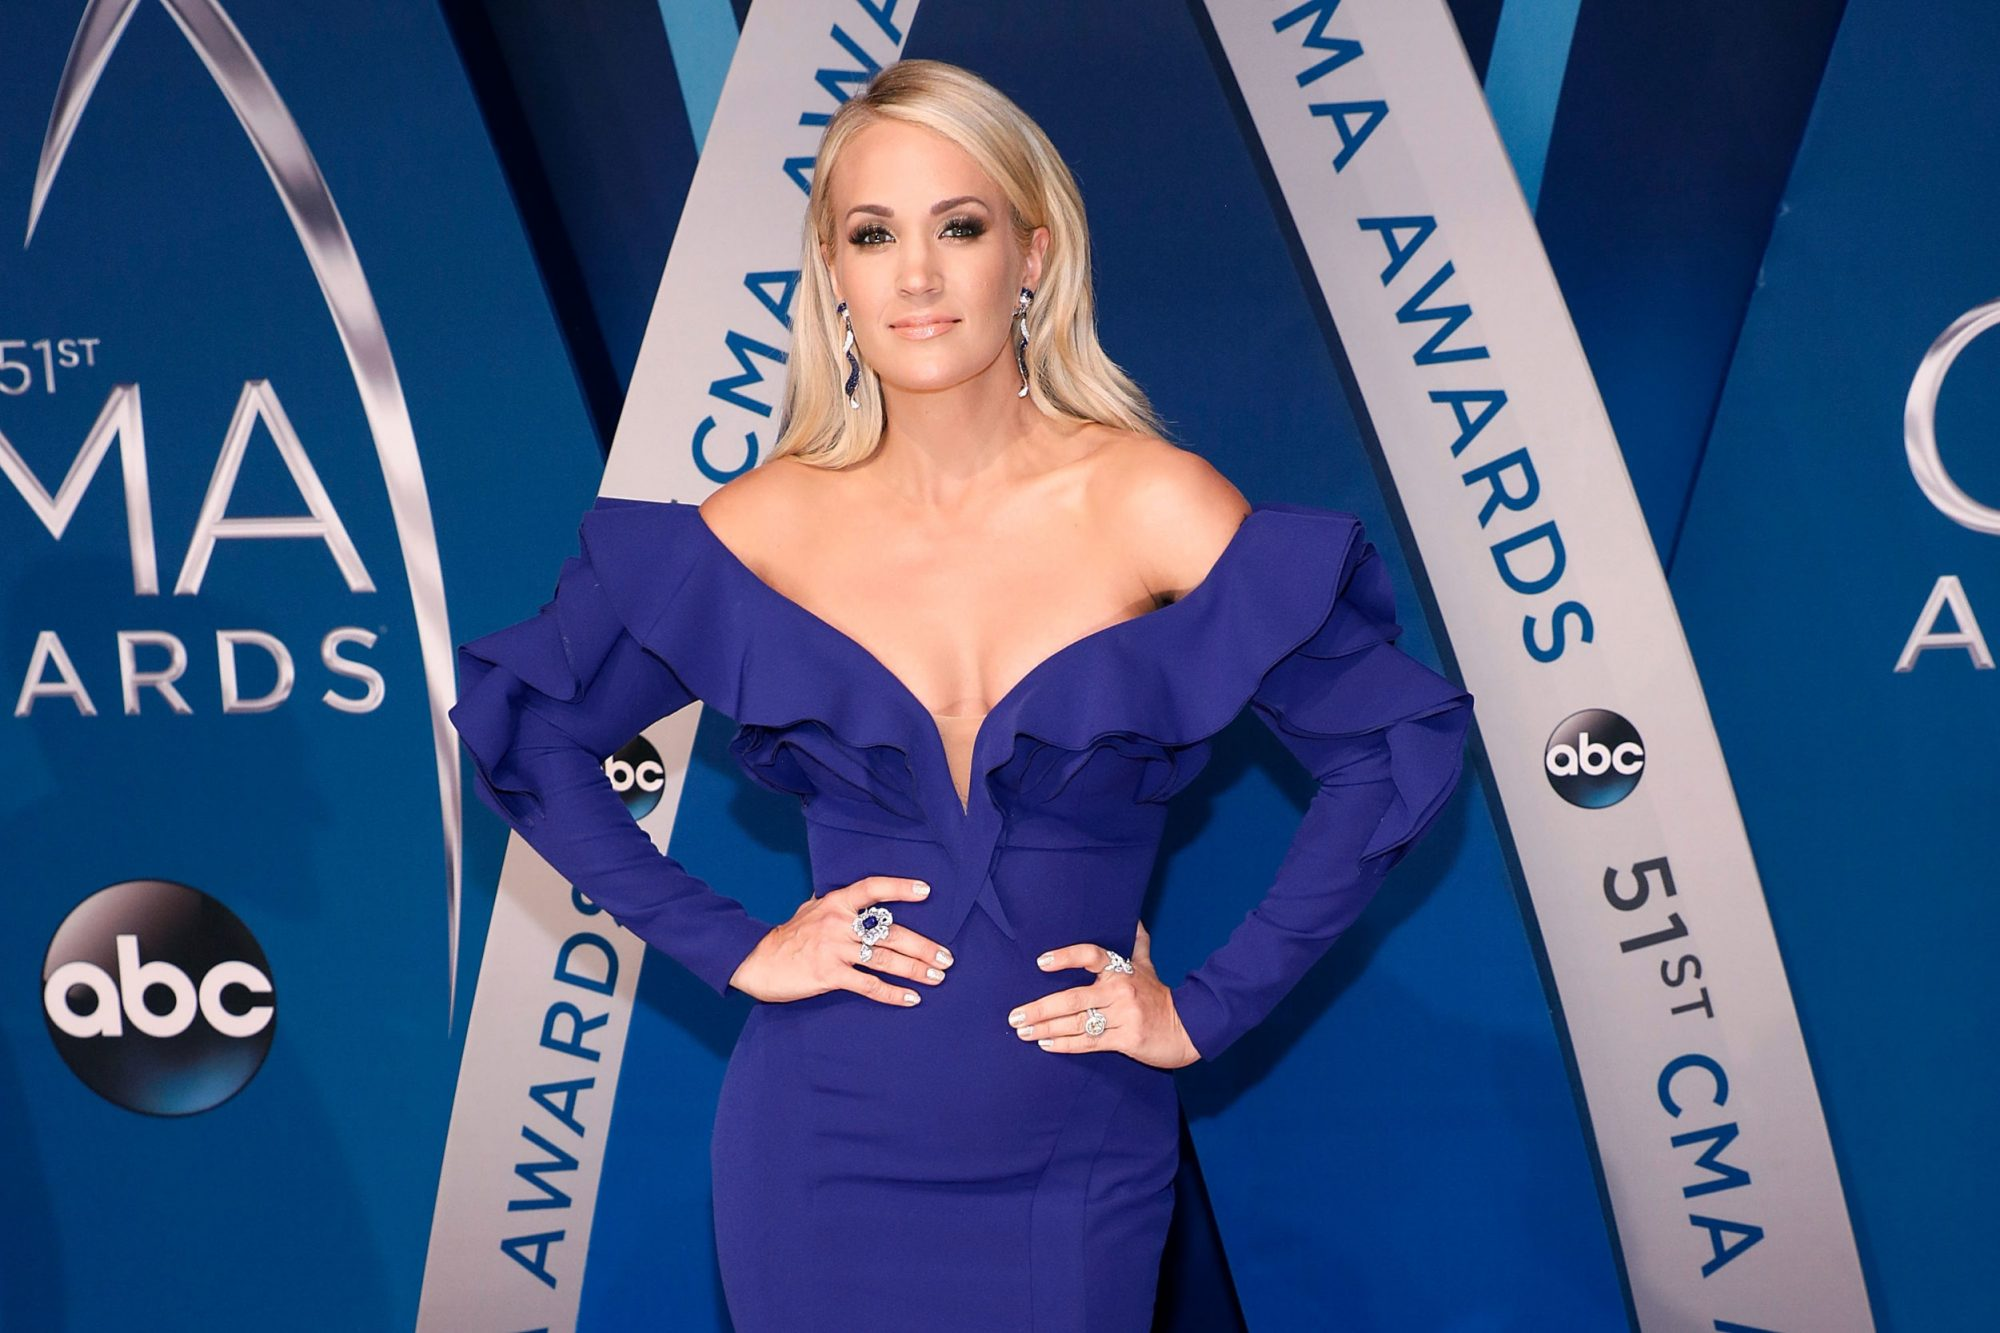 Photo of Carrie Underwood at the 51st Annual CMA Awards